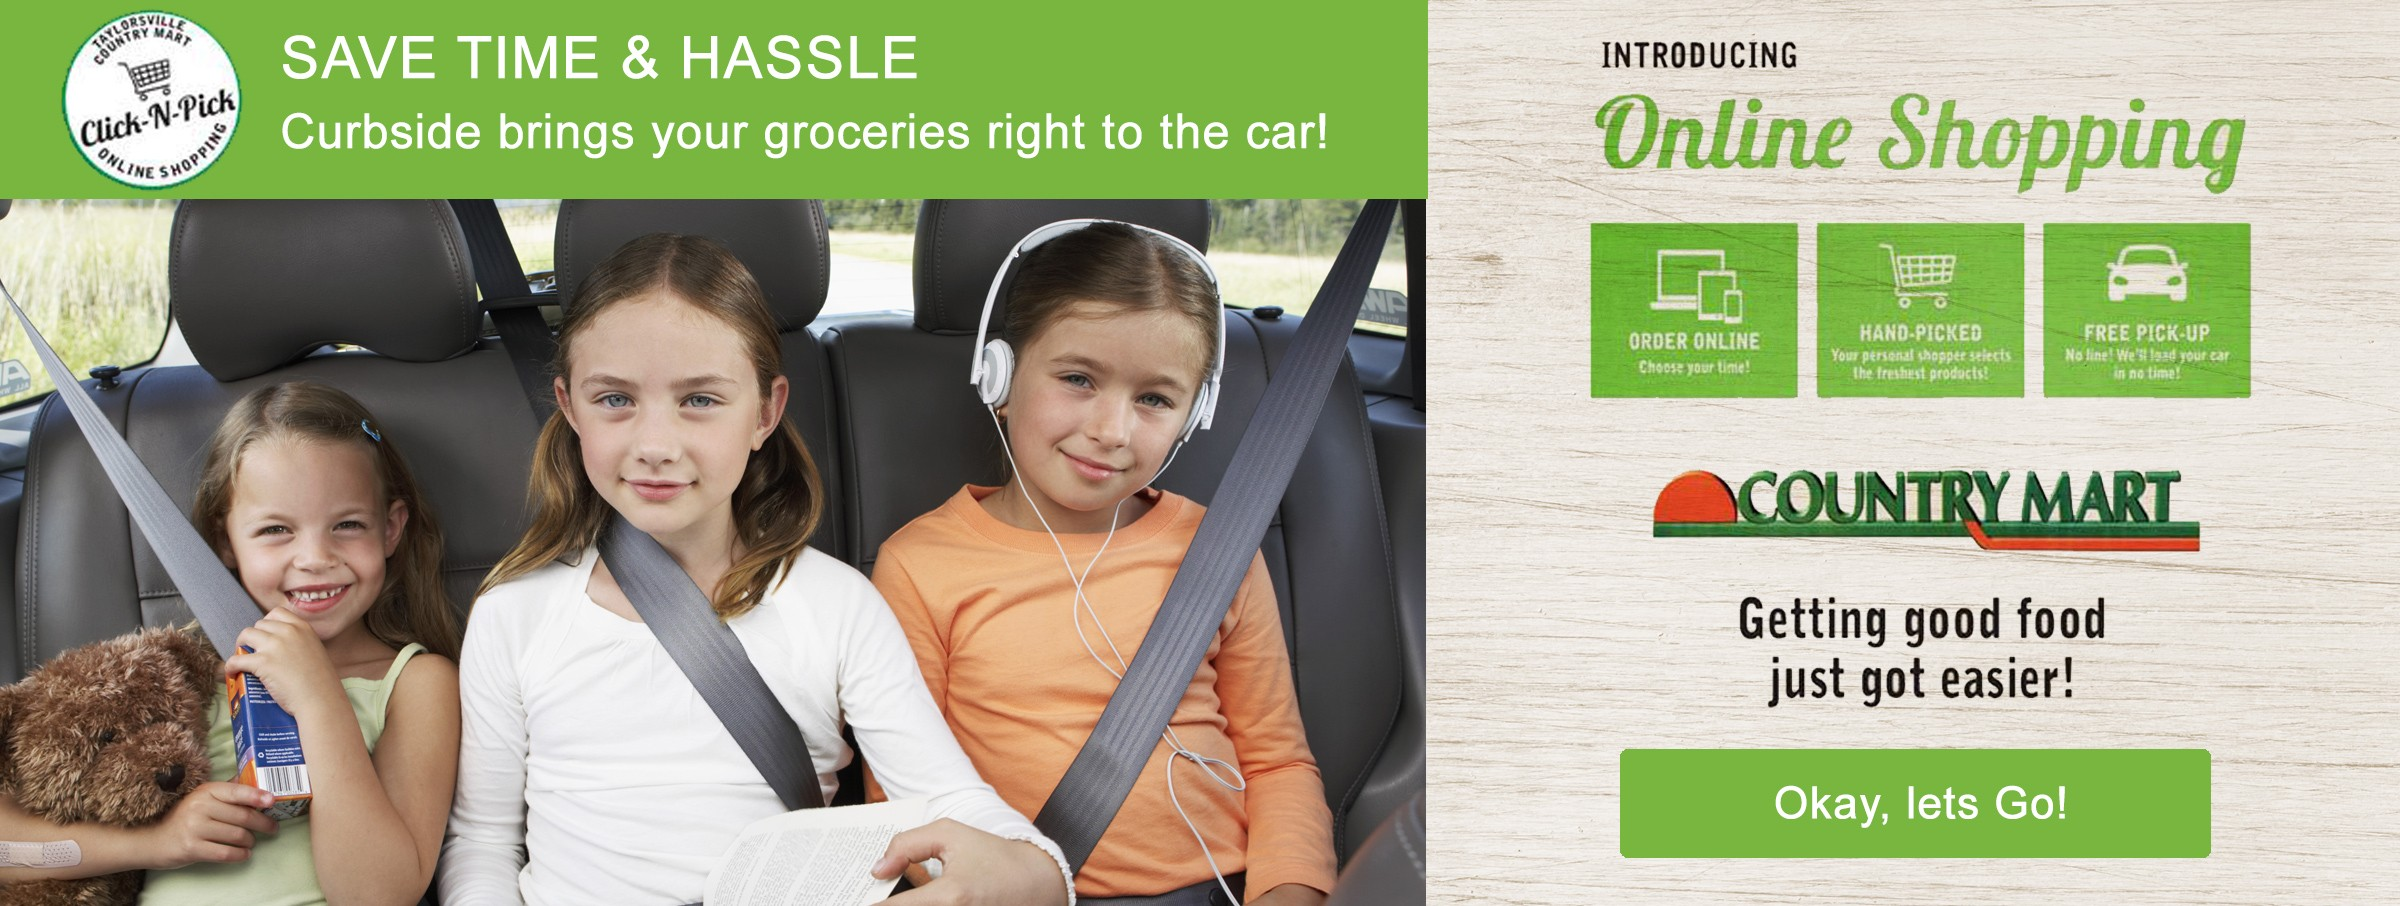 Introducing Online Shopping: Curbside brings your groceries right to the car!